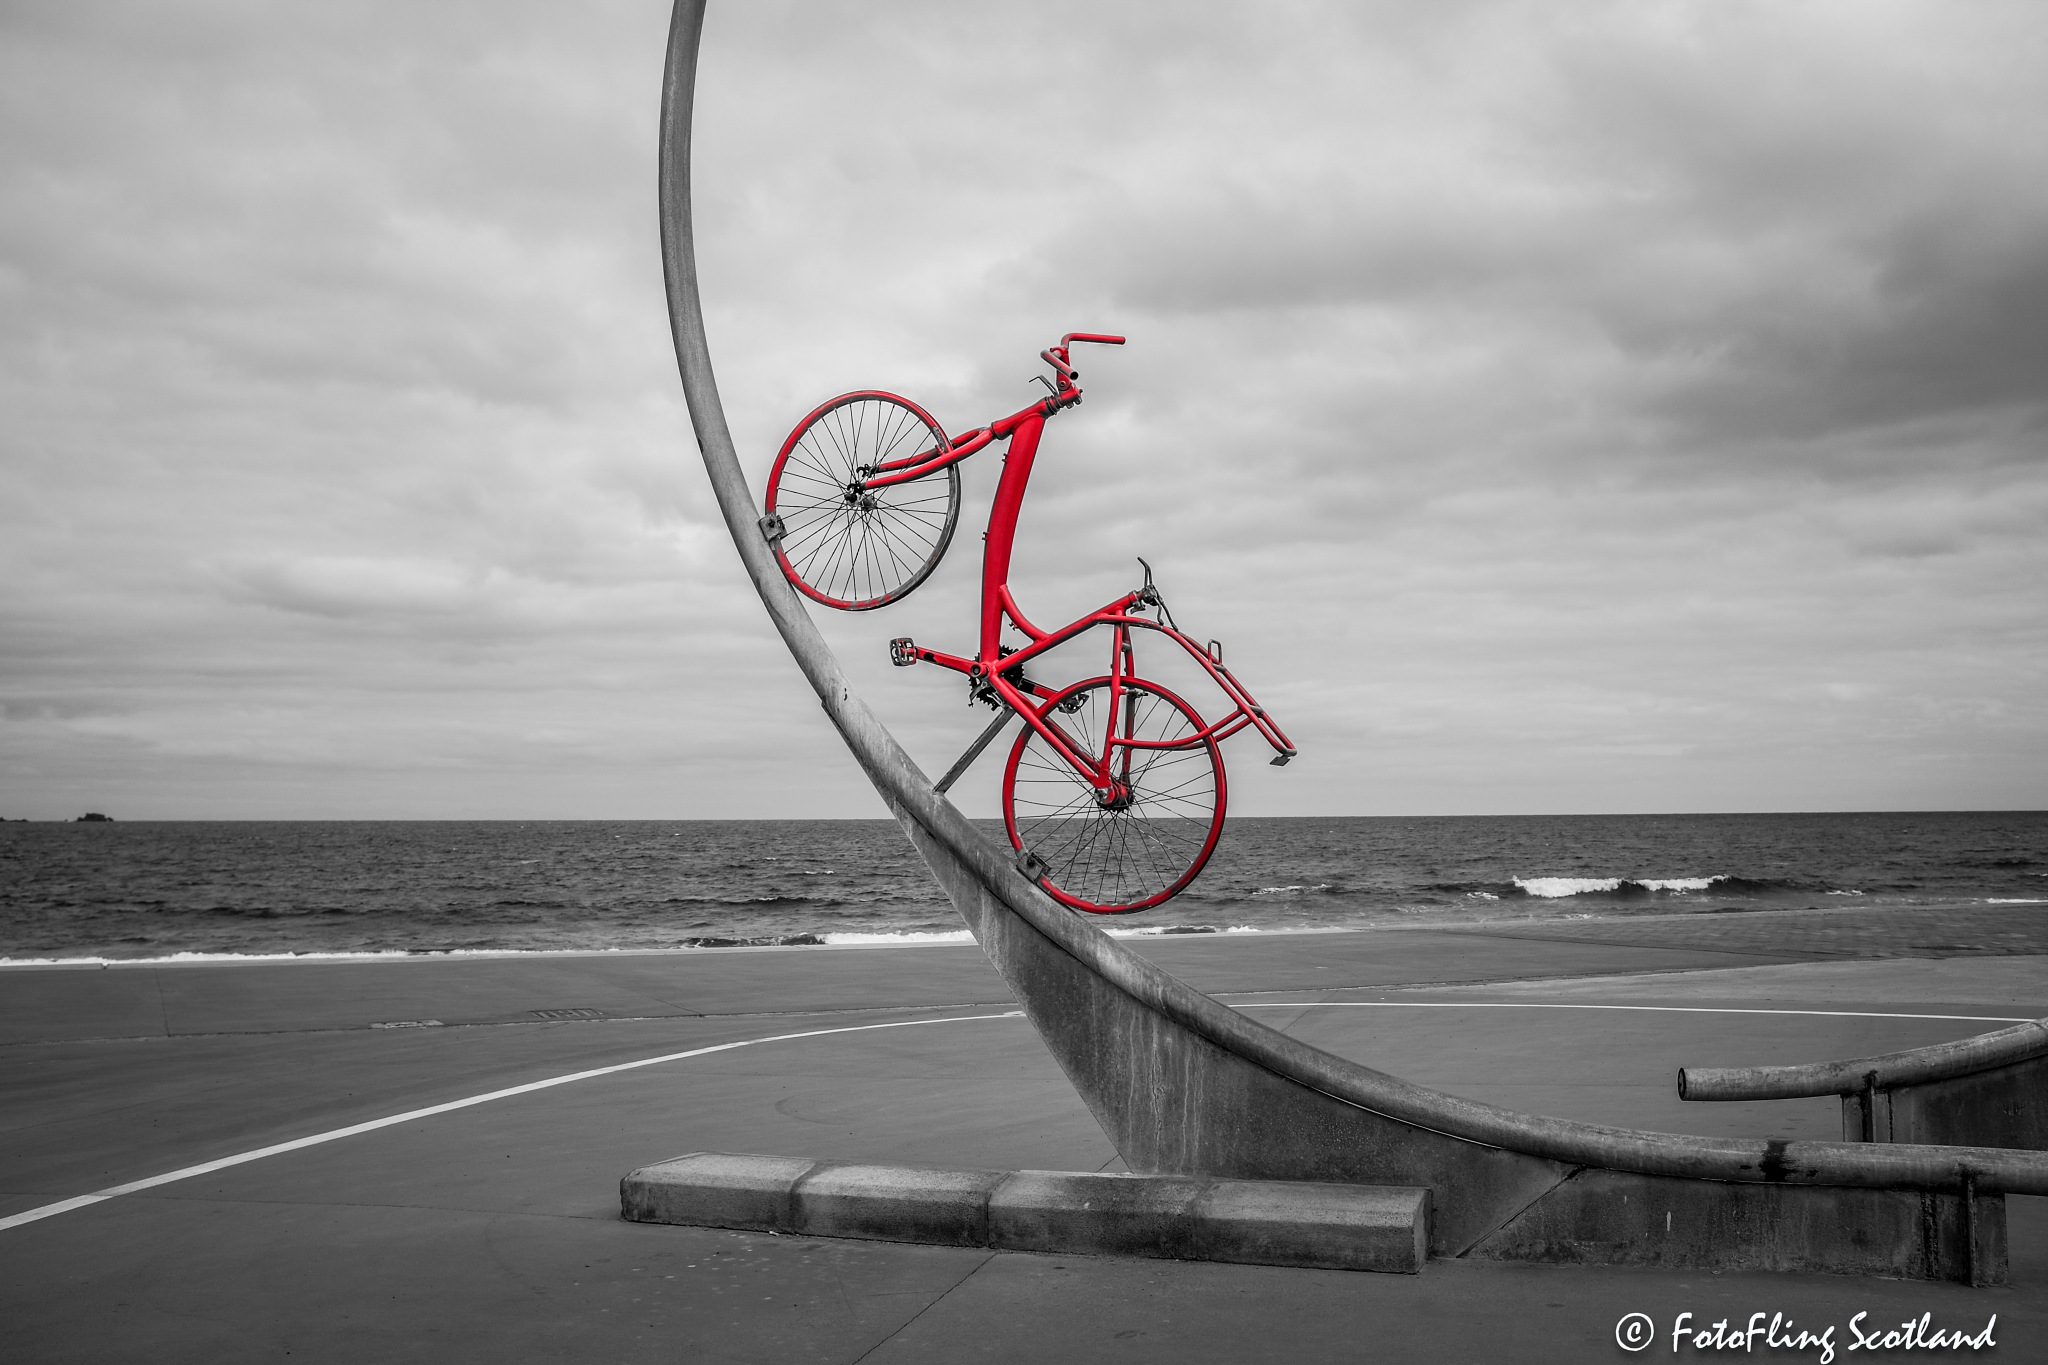 The Red Bicycle by FotoFling Scotland